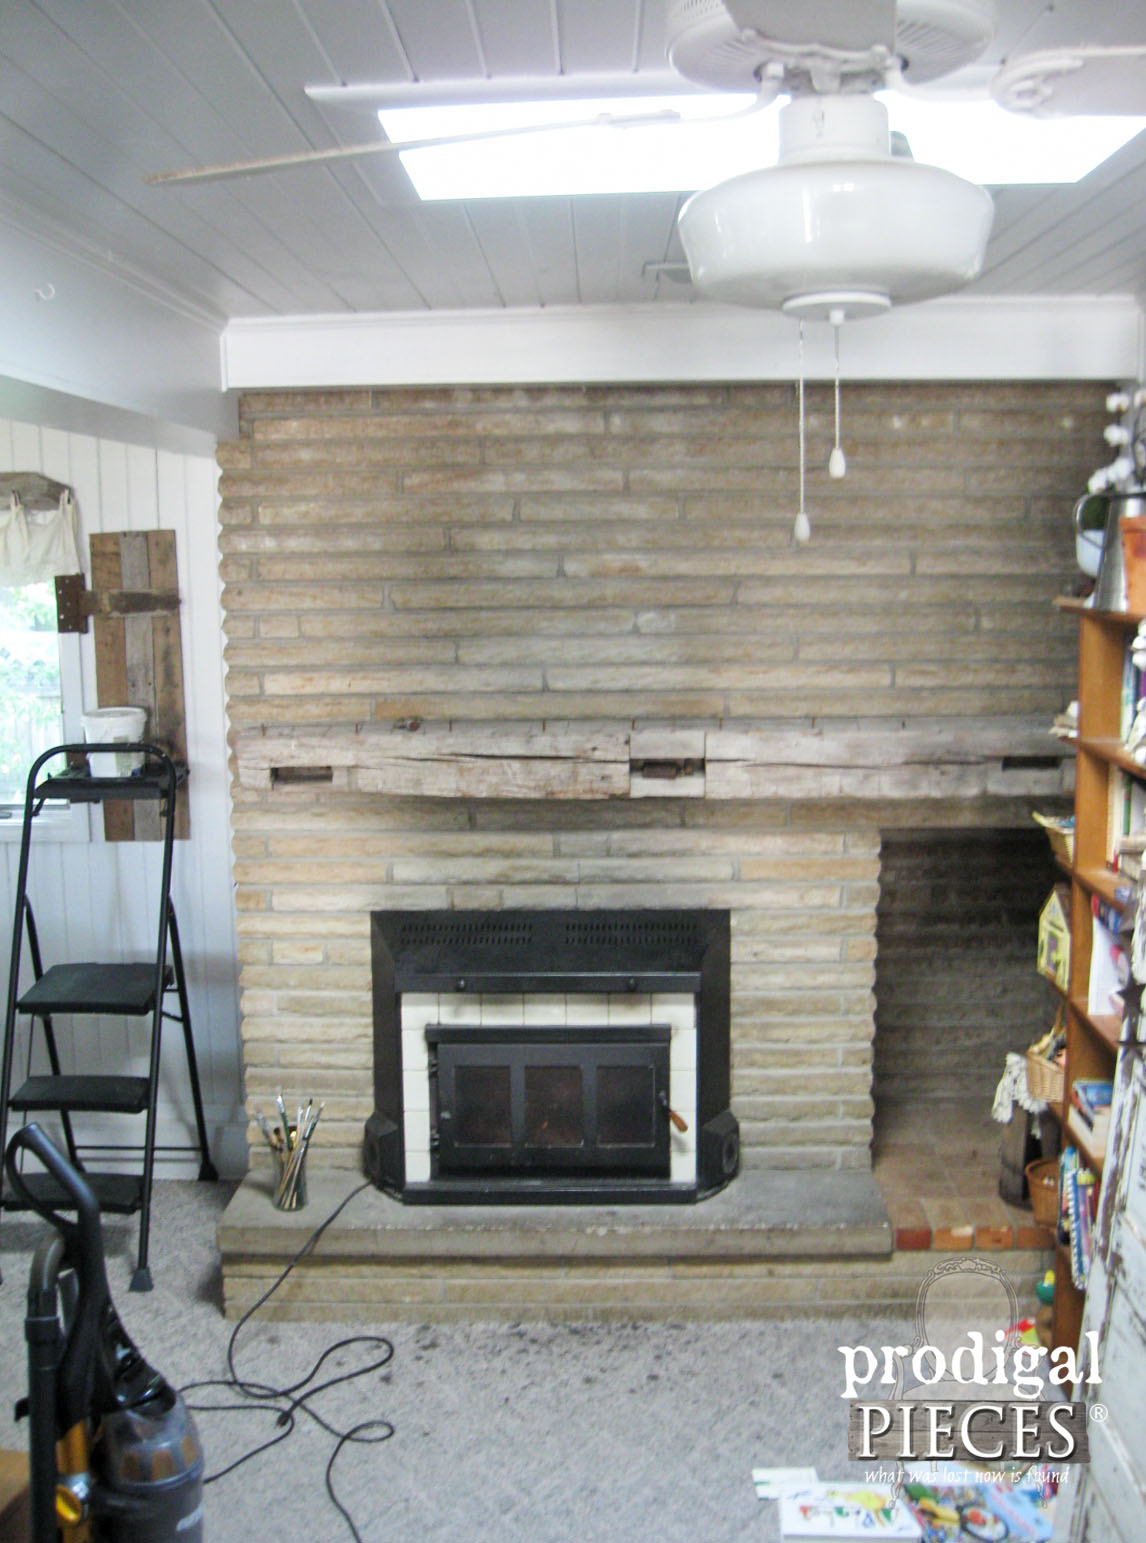 Sandstone Fireplace with Barn Beam Mantel Before | Prodigal Pieces | www.prodigalpieces.com